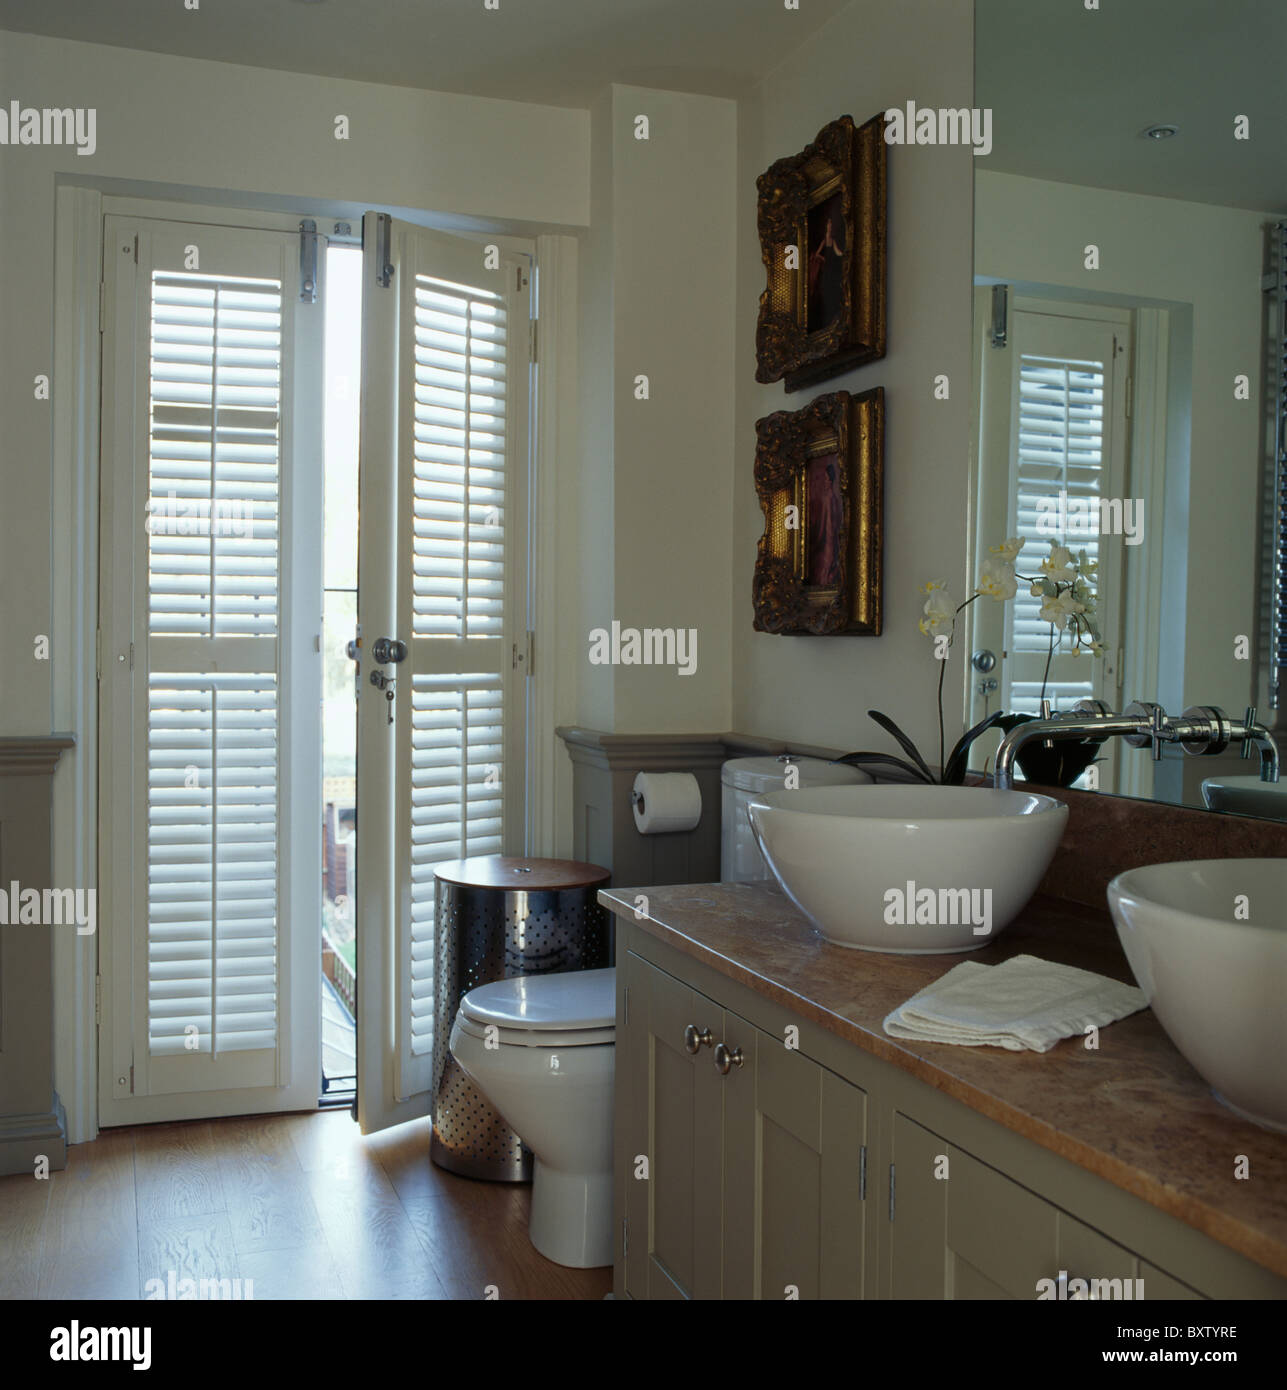 Plantation Louvre Shutters On French Doors In Modern White